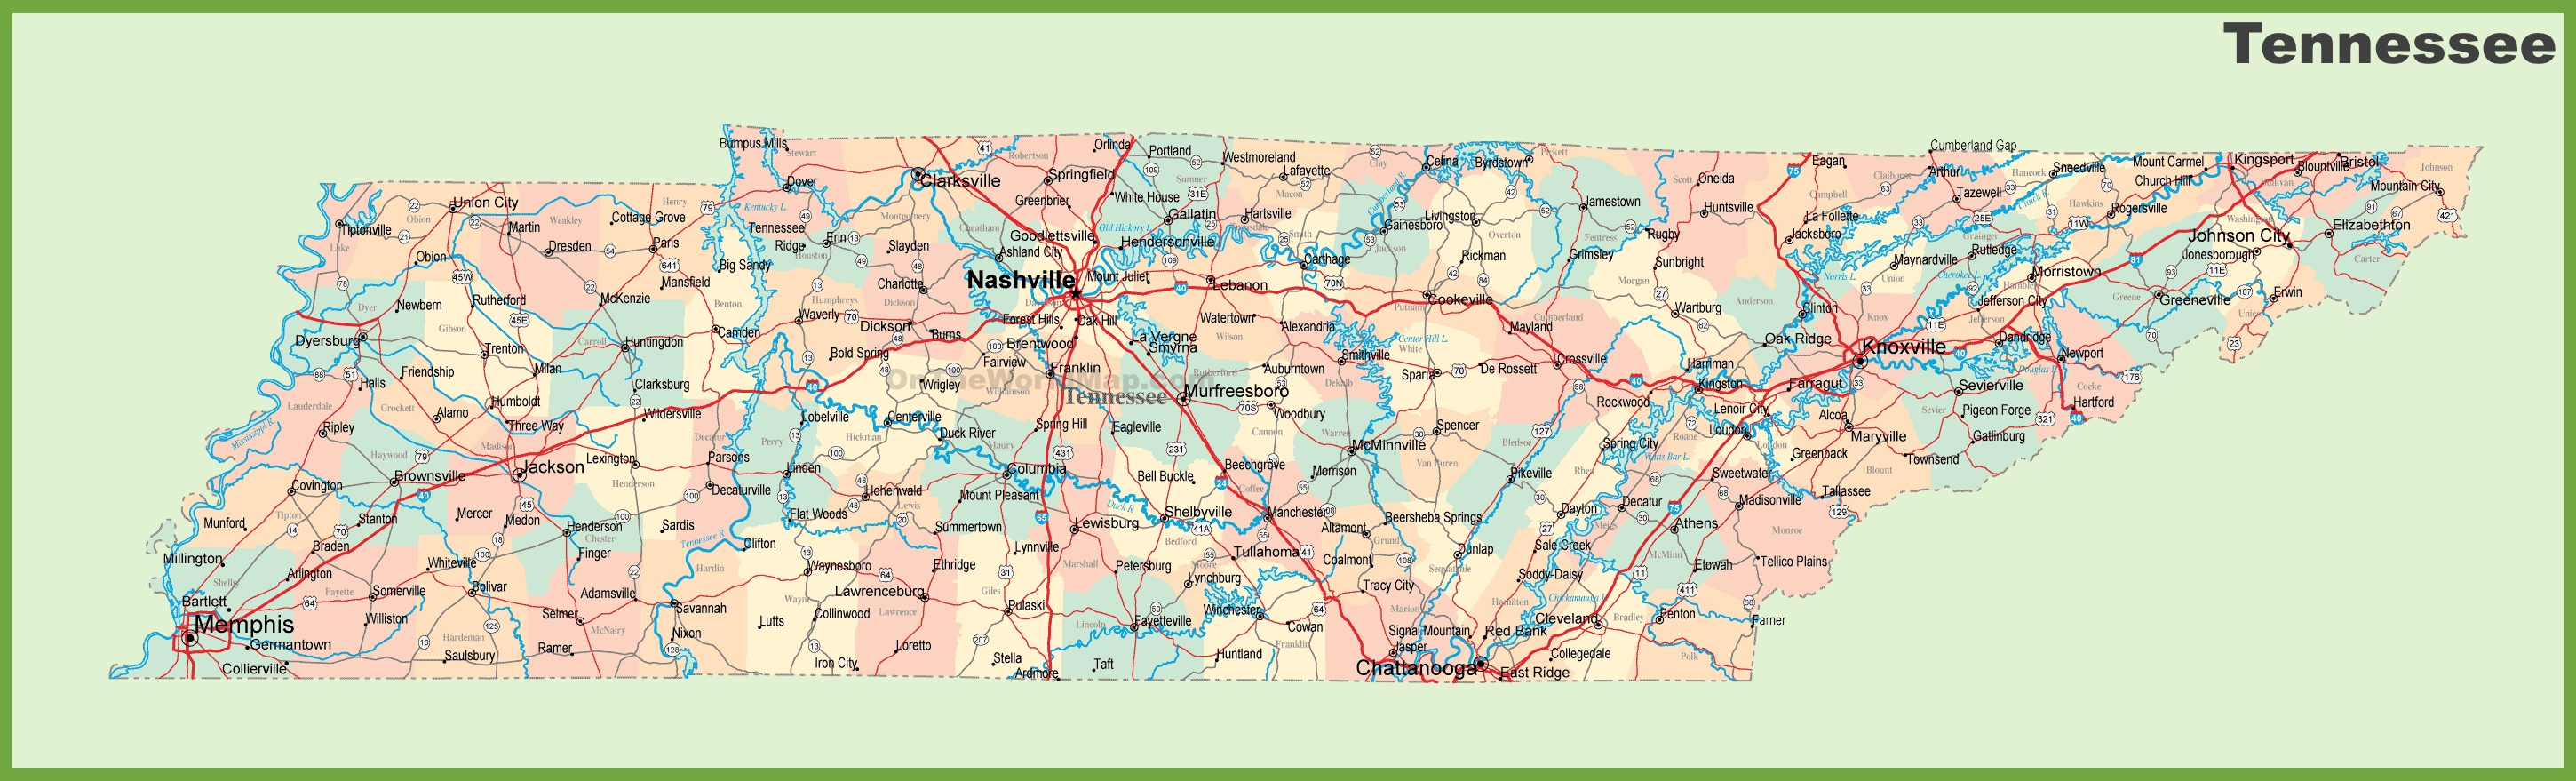 Tennessee Cities Map Road map of Tennessee with cities